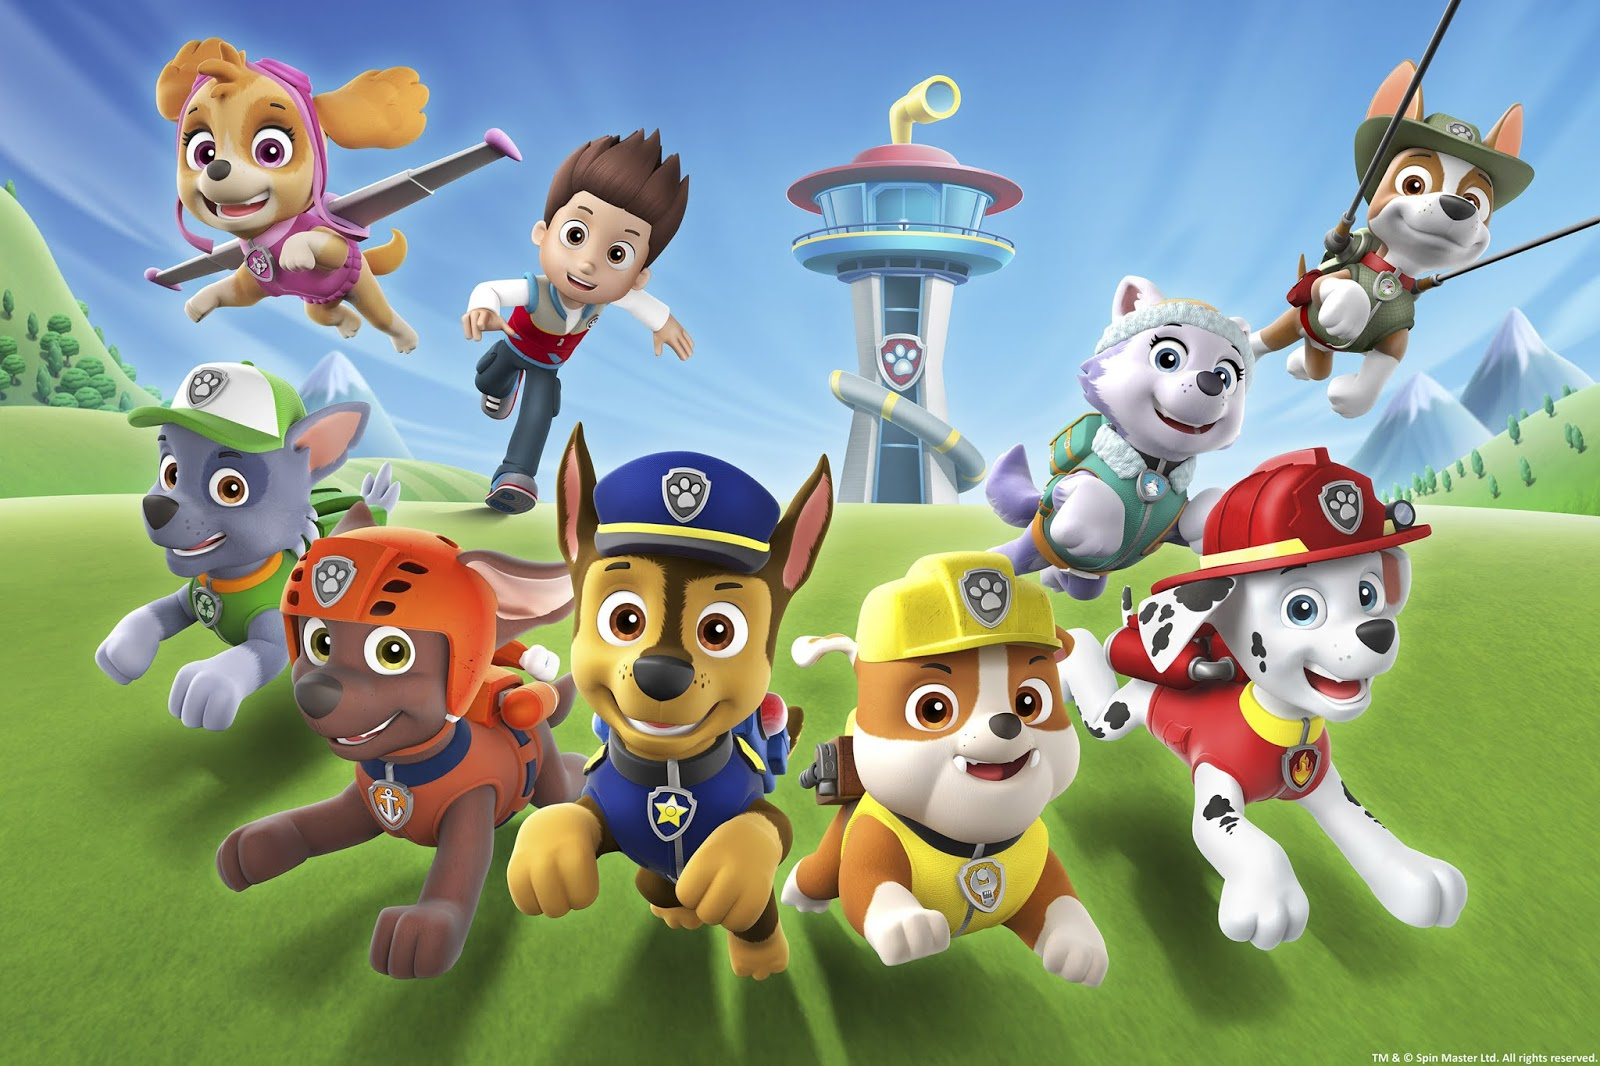 Dynamite Entertainment and Curiosity Ink Media to Release 'PAW Patrol' Activity Book in Spring 2022